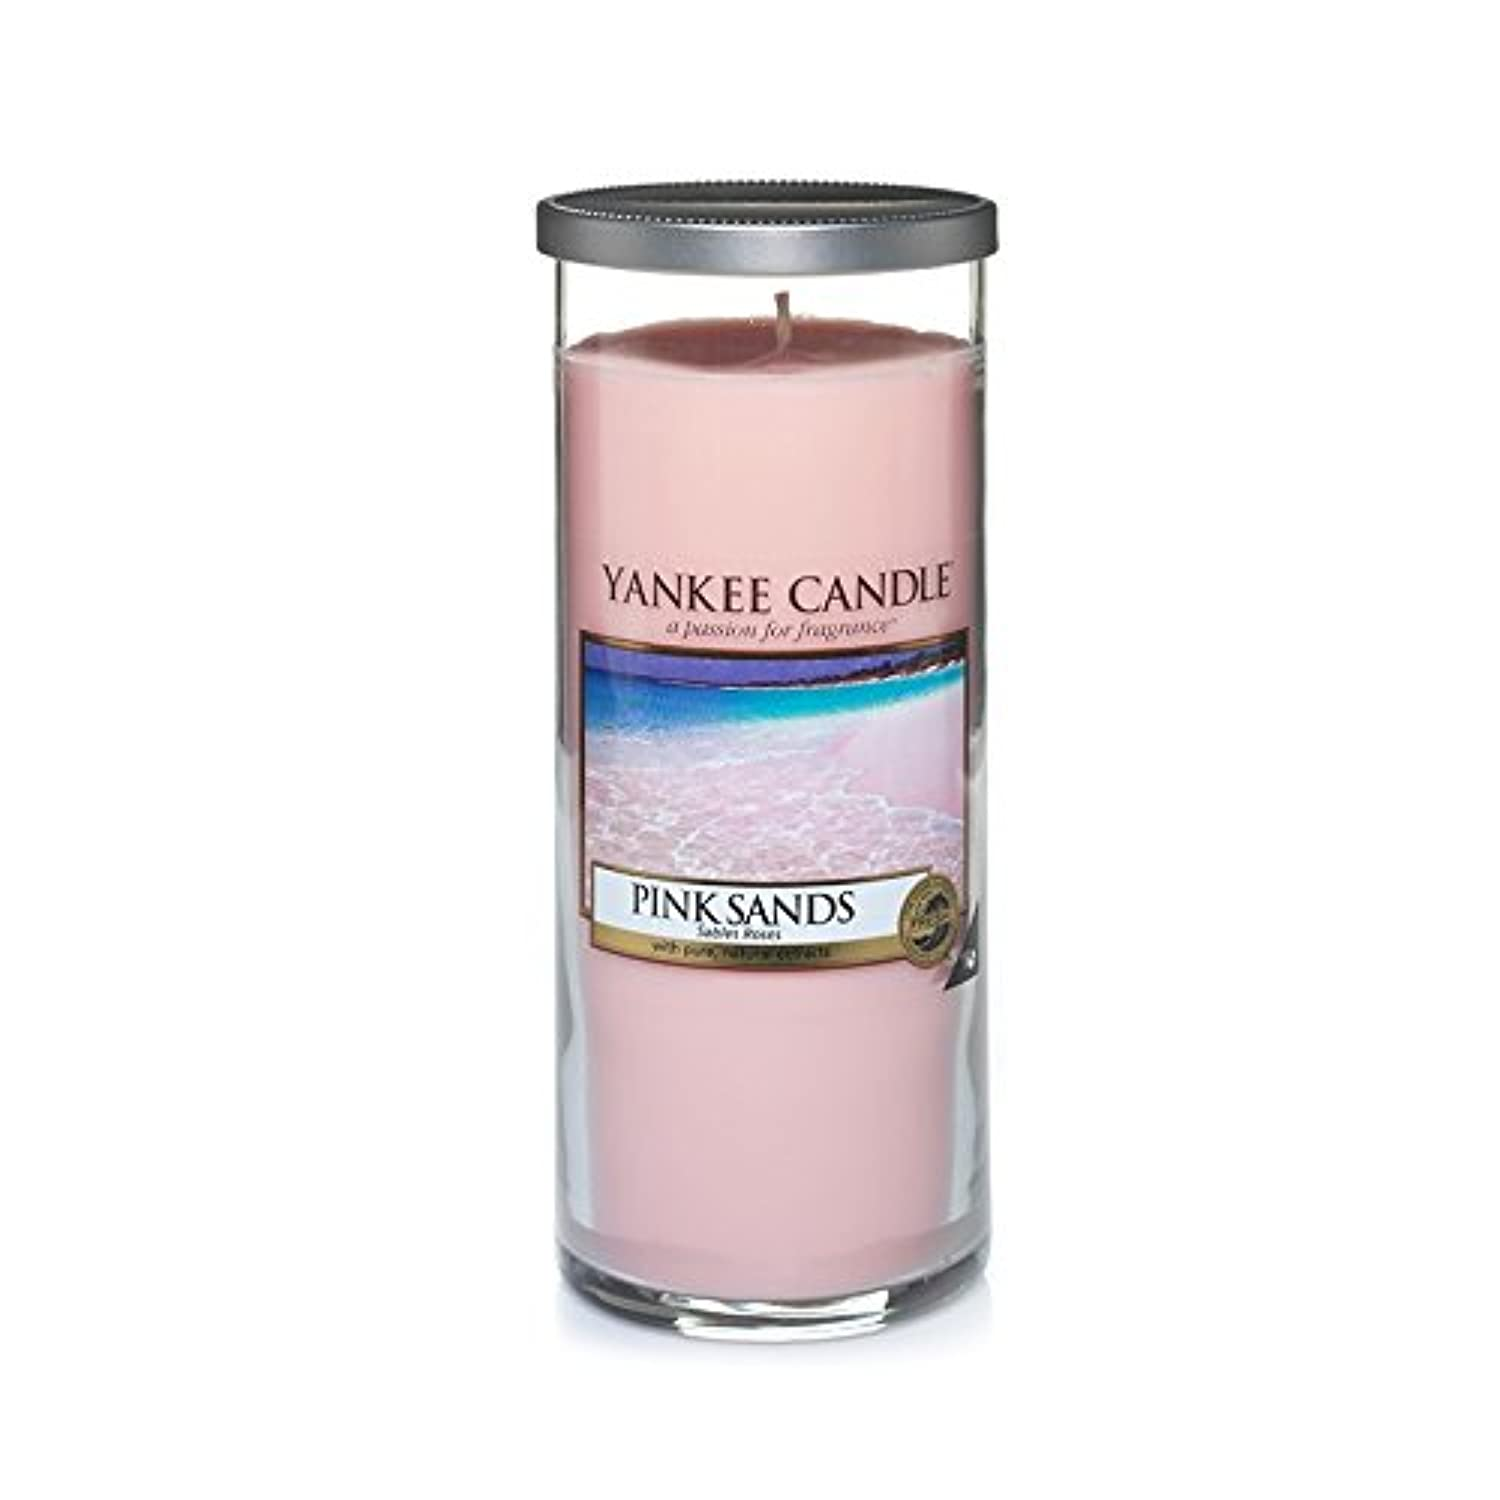 Yankee Candles Large Pillar Candle - Pink Sands? (Pack of 2) - ヤンキーキャンドル大きな柱キャンドル - ピンクの砂? (x2) [並行輸入品]